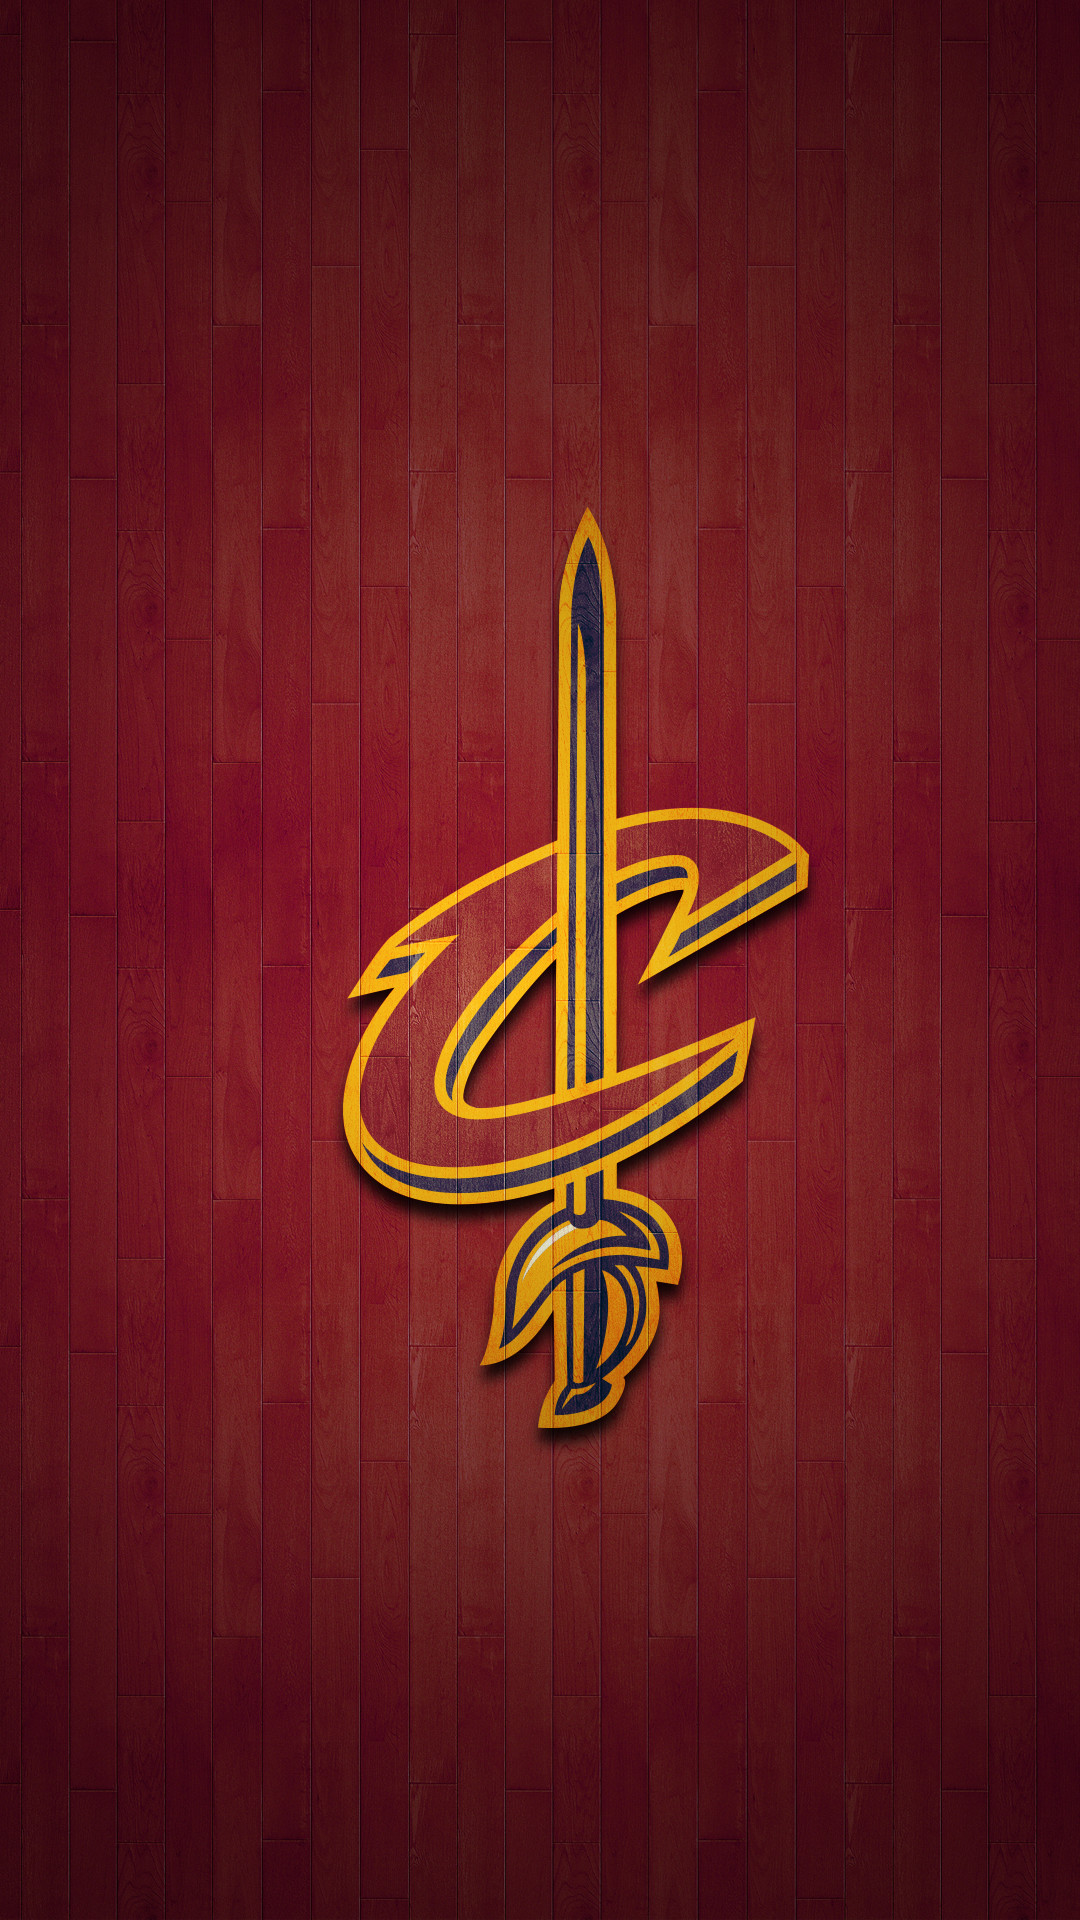 Cavaliers Wallpapers (81+ images)